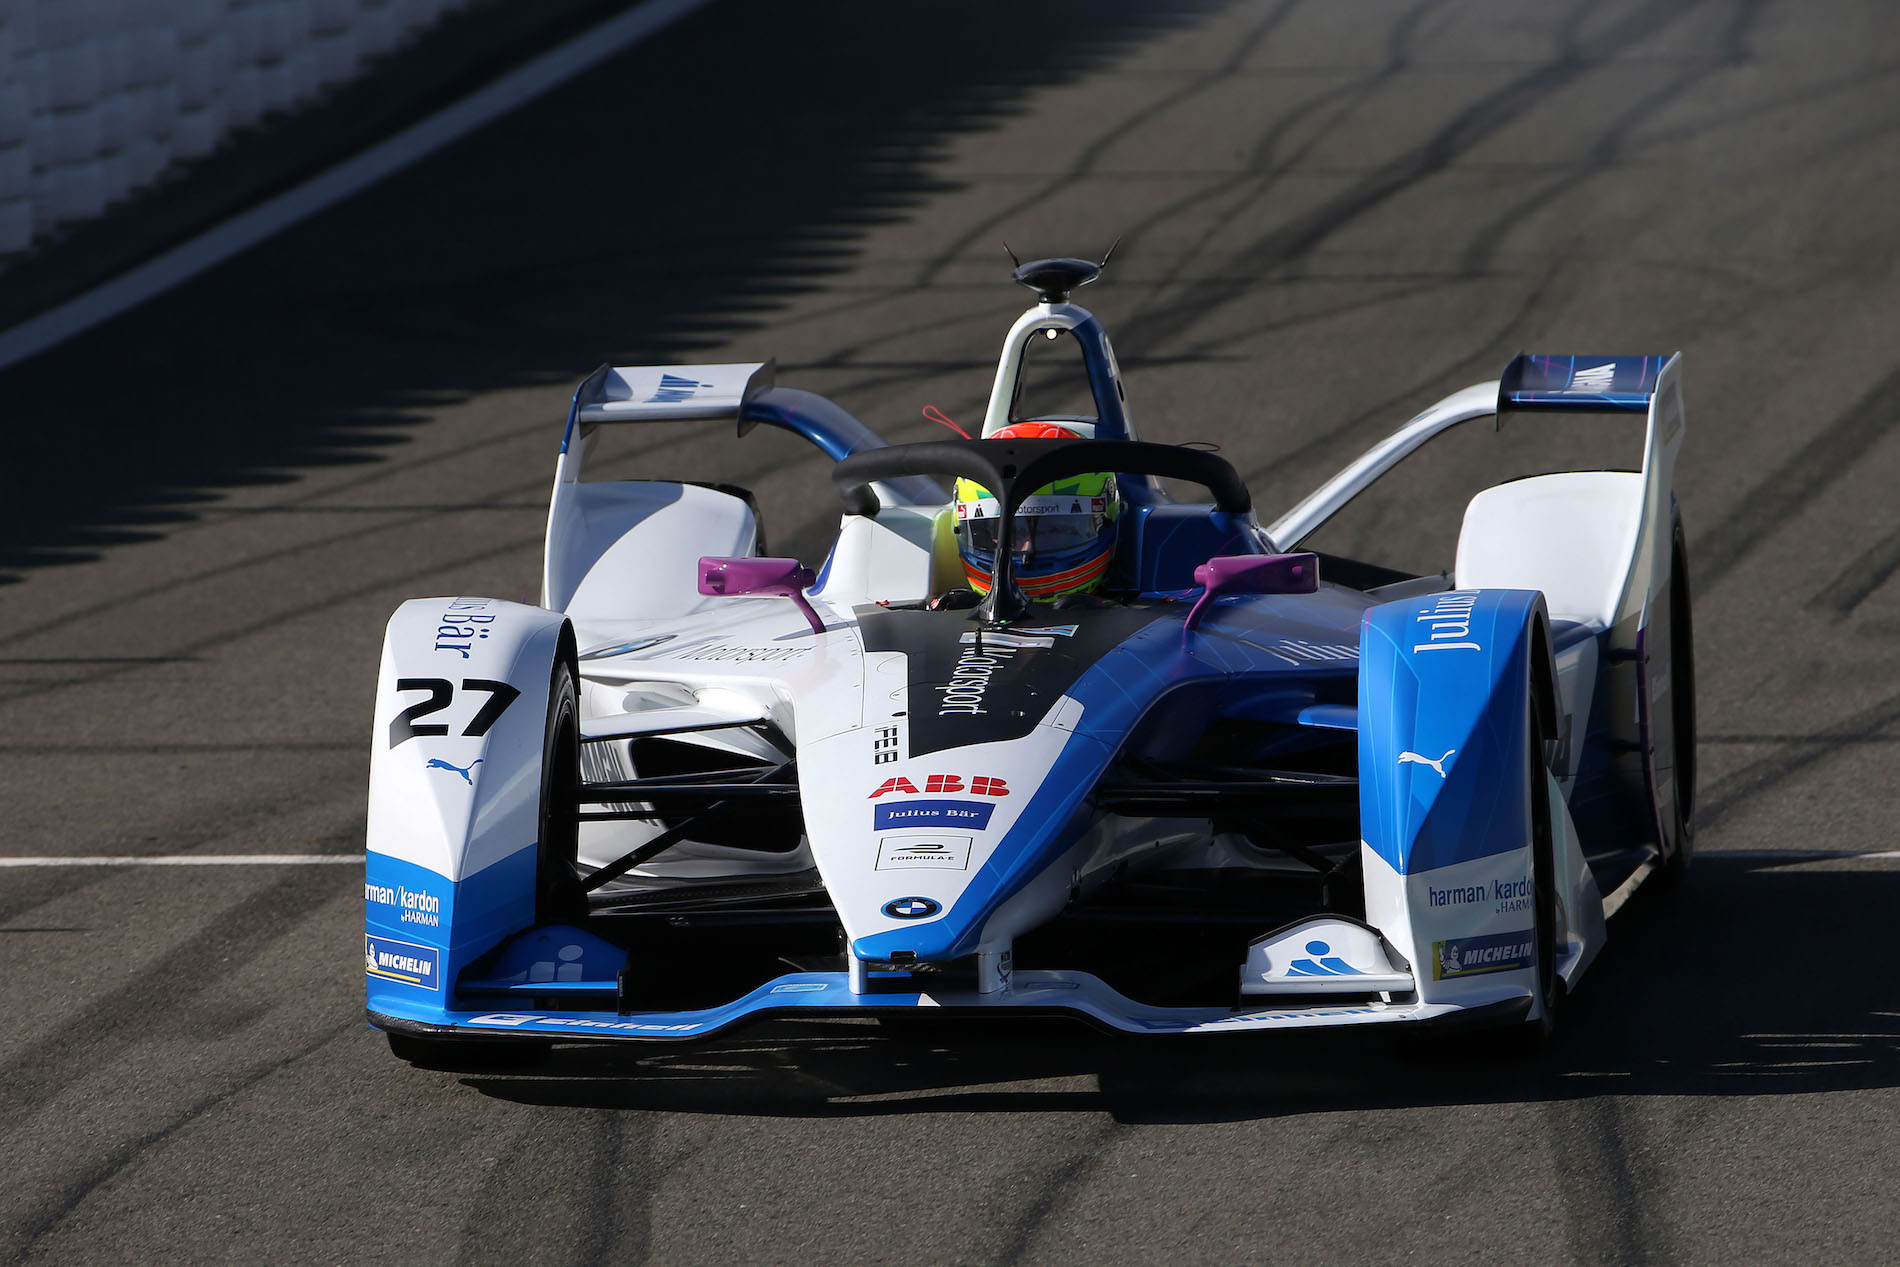 Bmw Ife.18 Race Car Set For First Race Appearance In Formula E Championship